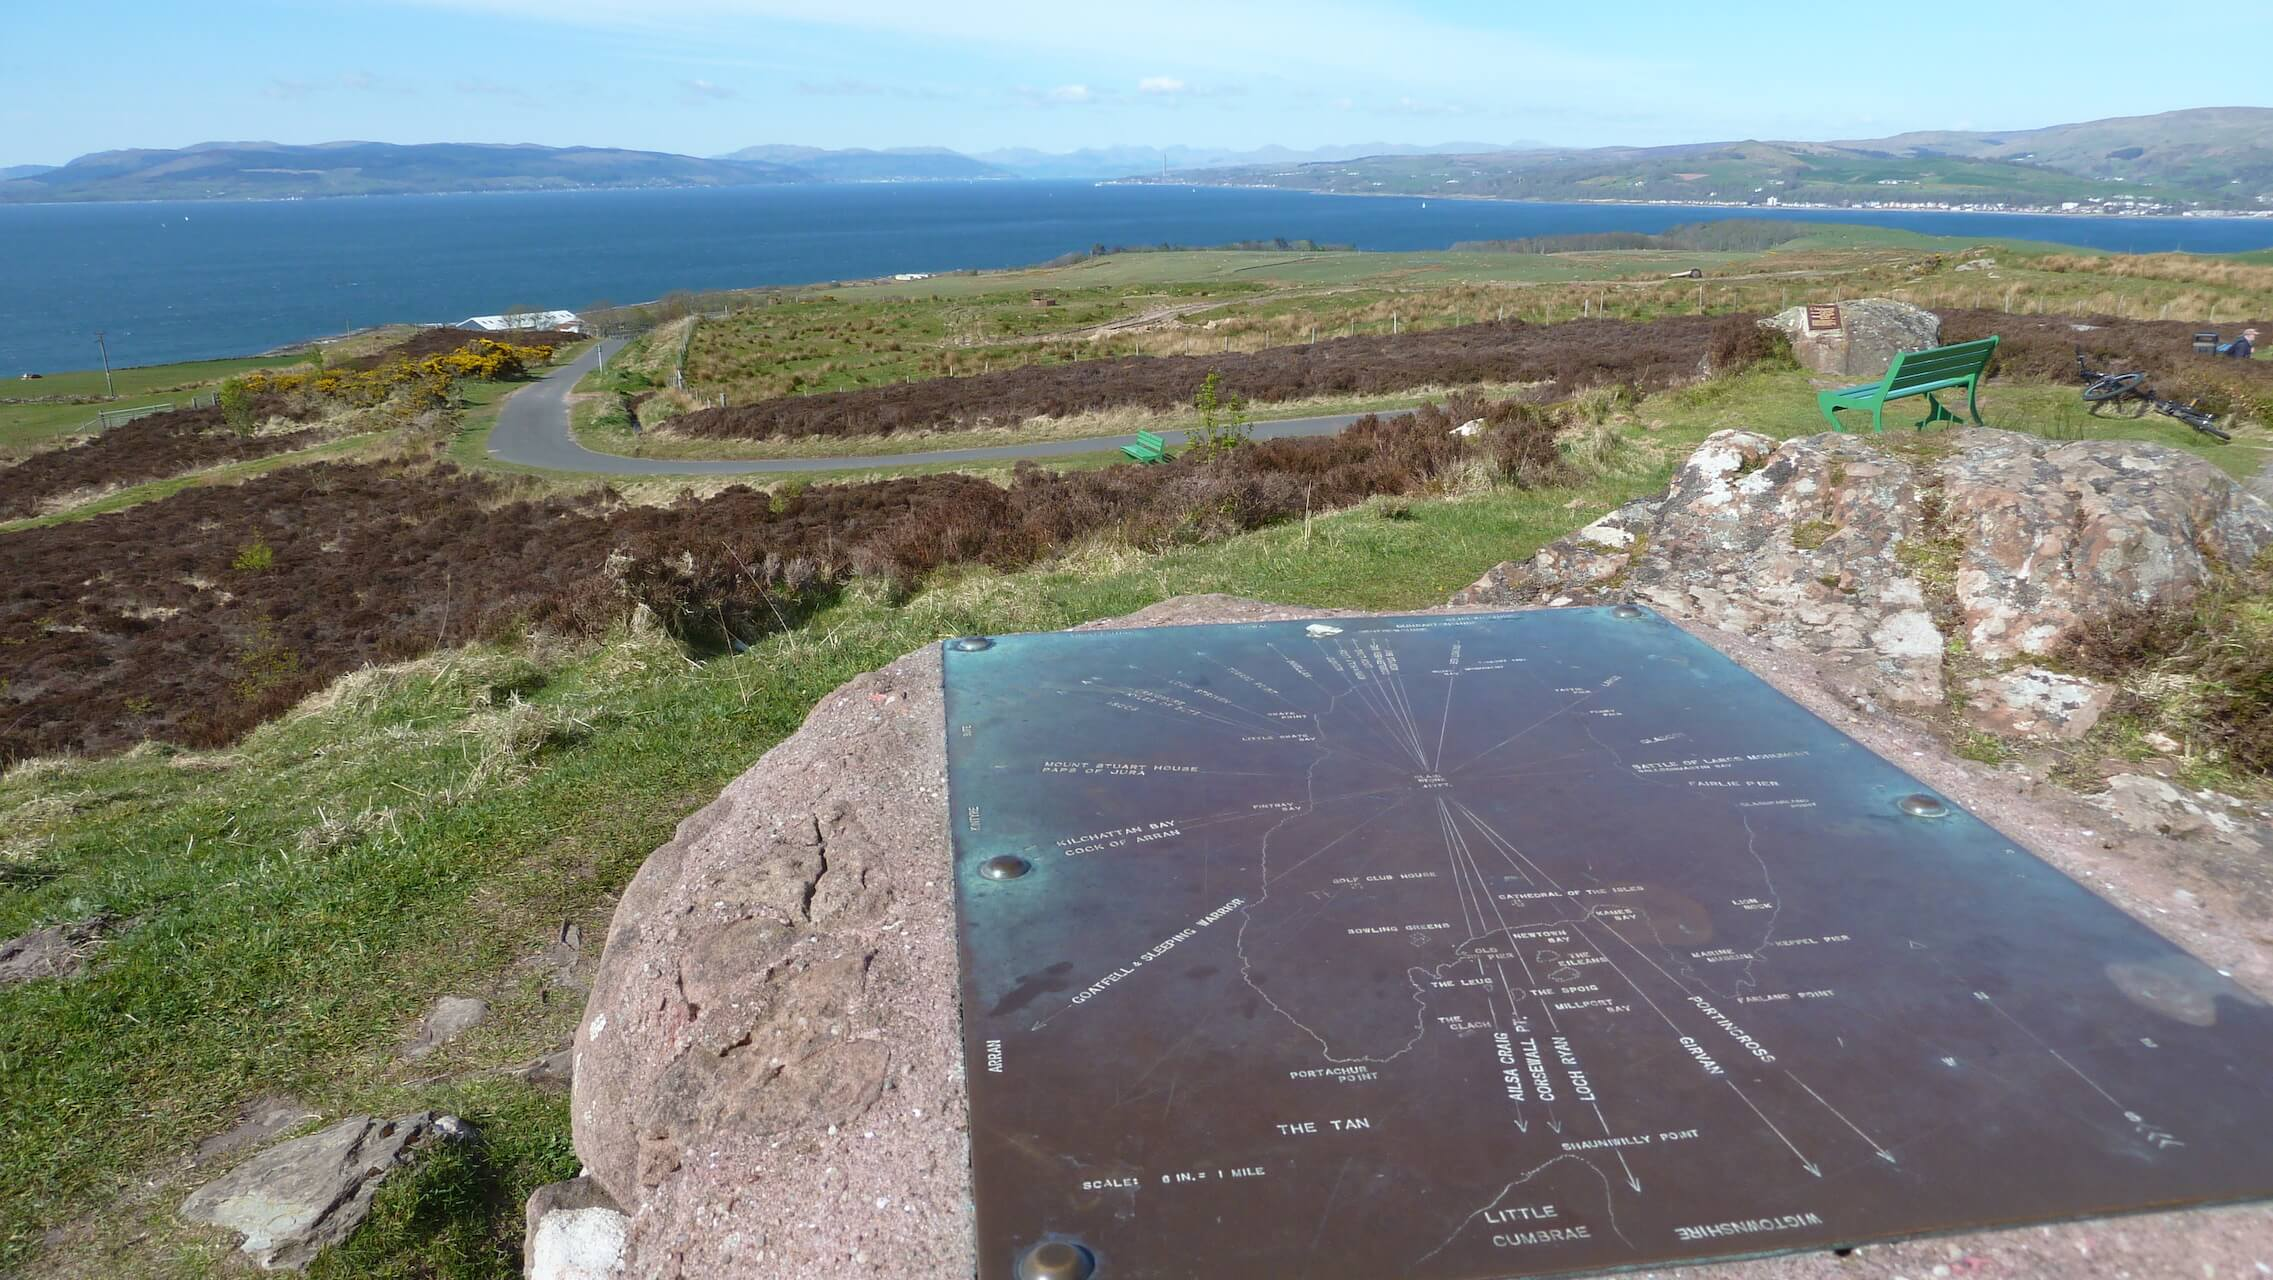 Viewpoint on Barbay Hill on the Isle of Cumbrae